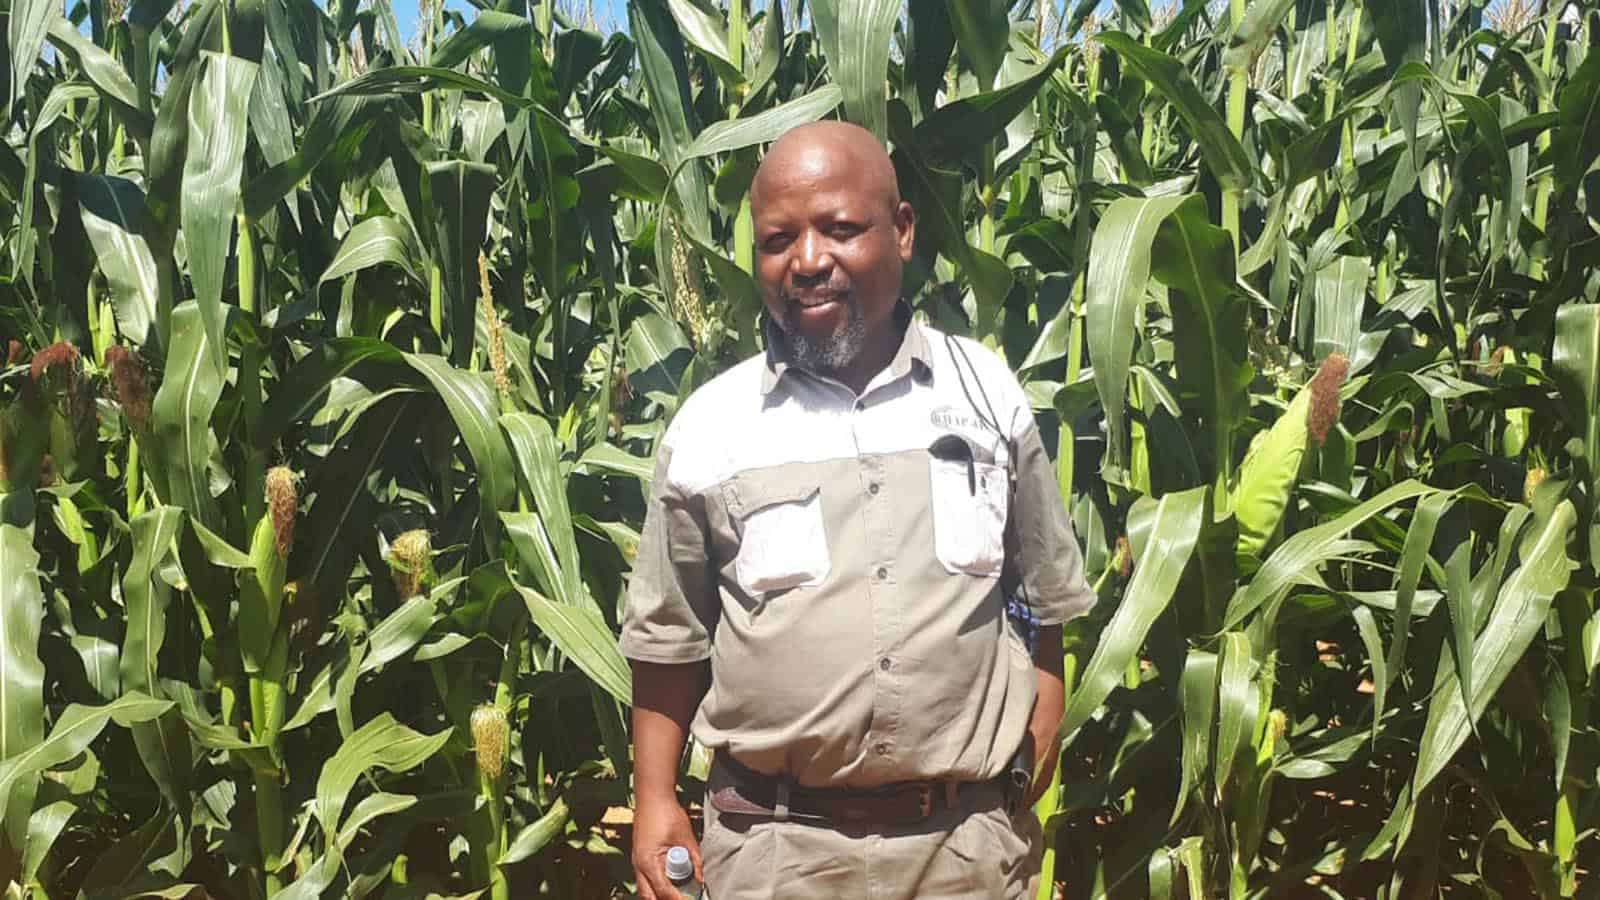 Shadrack Mbele (52) from Lindley in the Free State was a teacher by profession he always had an aptitude for business event though he is a teacher by profession he always pursued business ventures that have led to his success today. Photo: Supplied/ Food For Mzansi